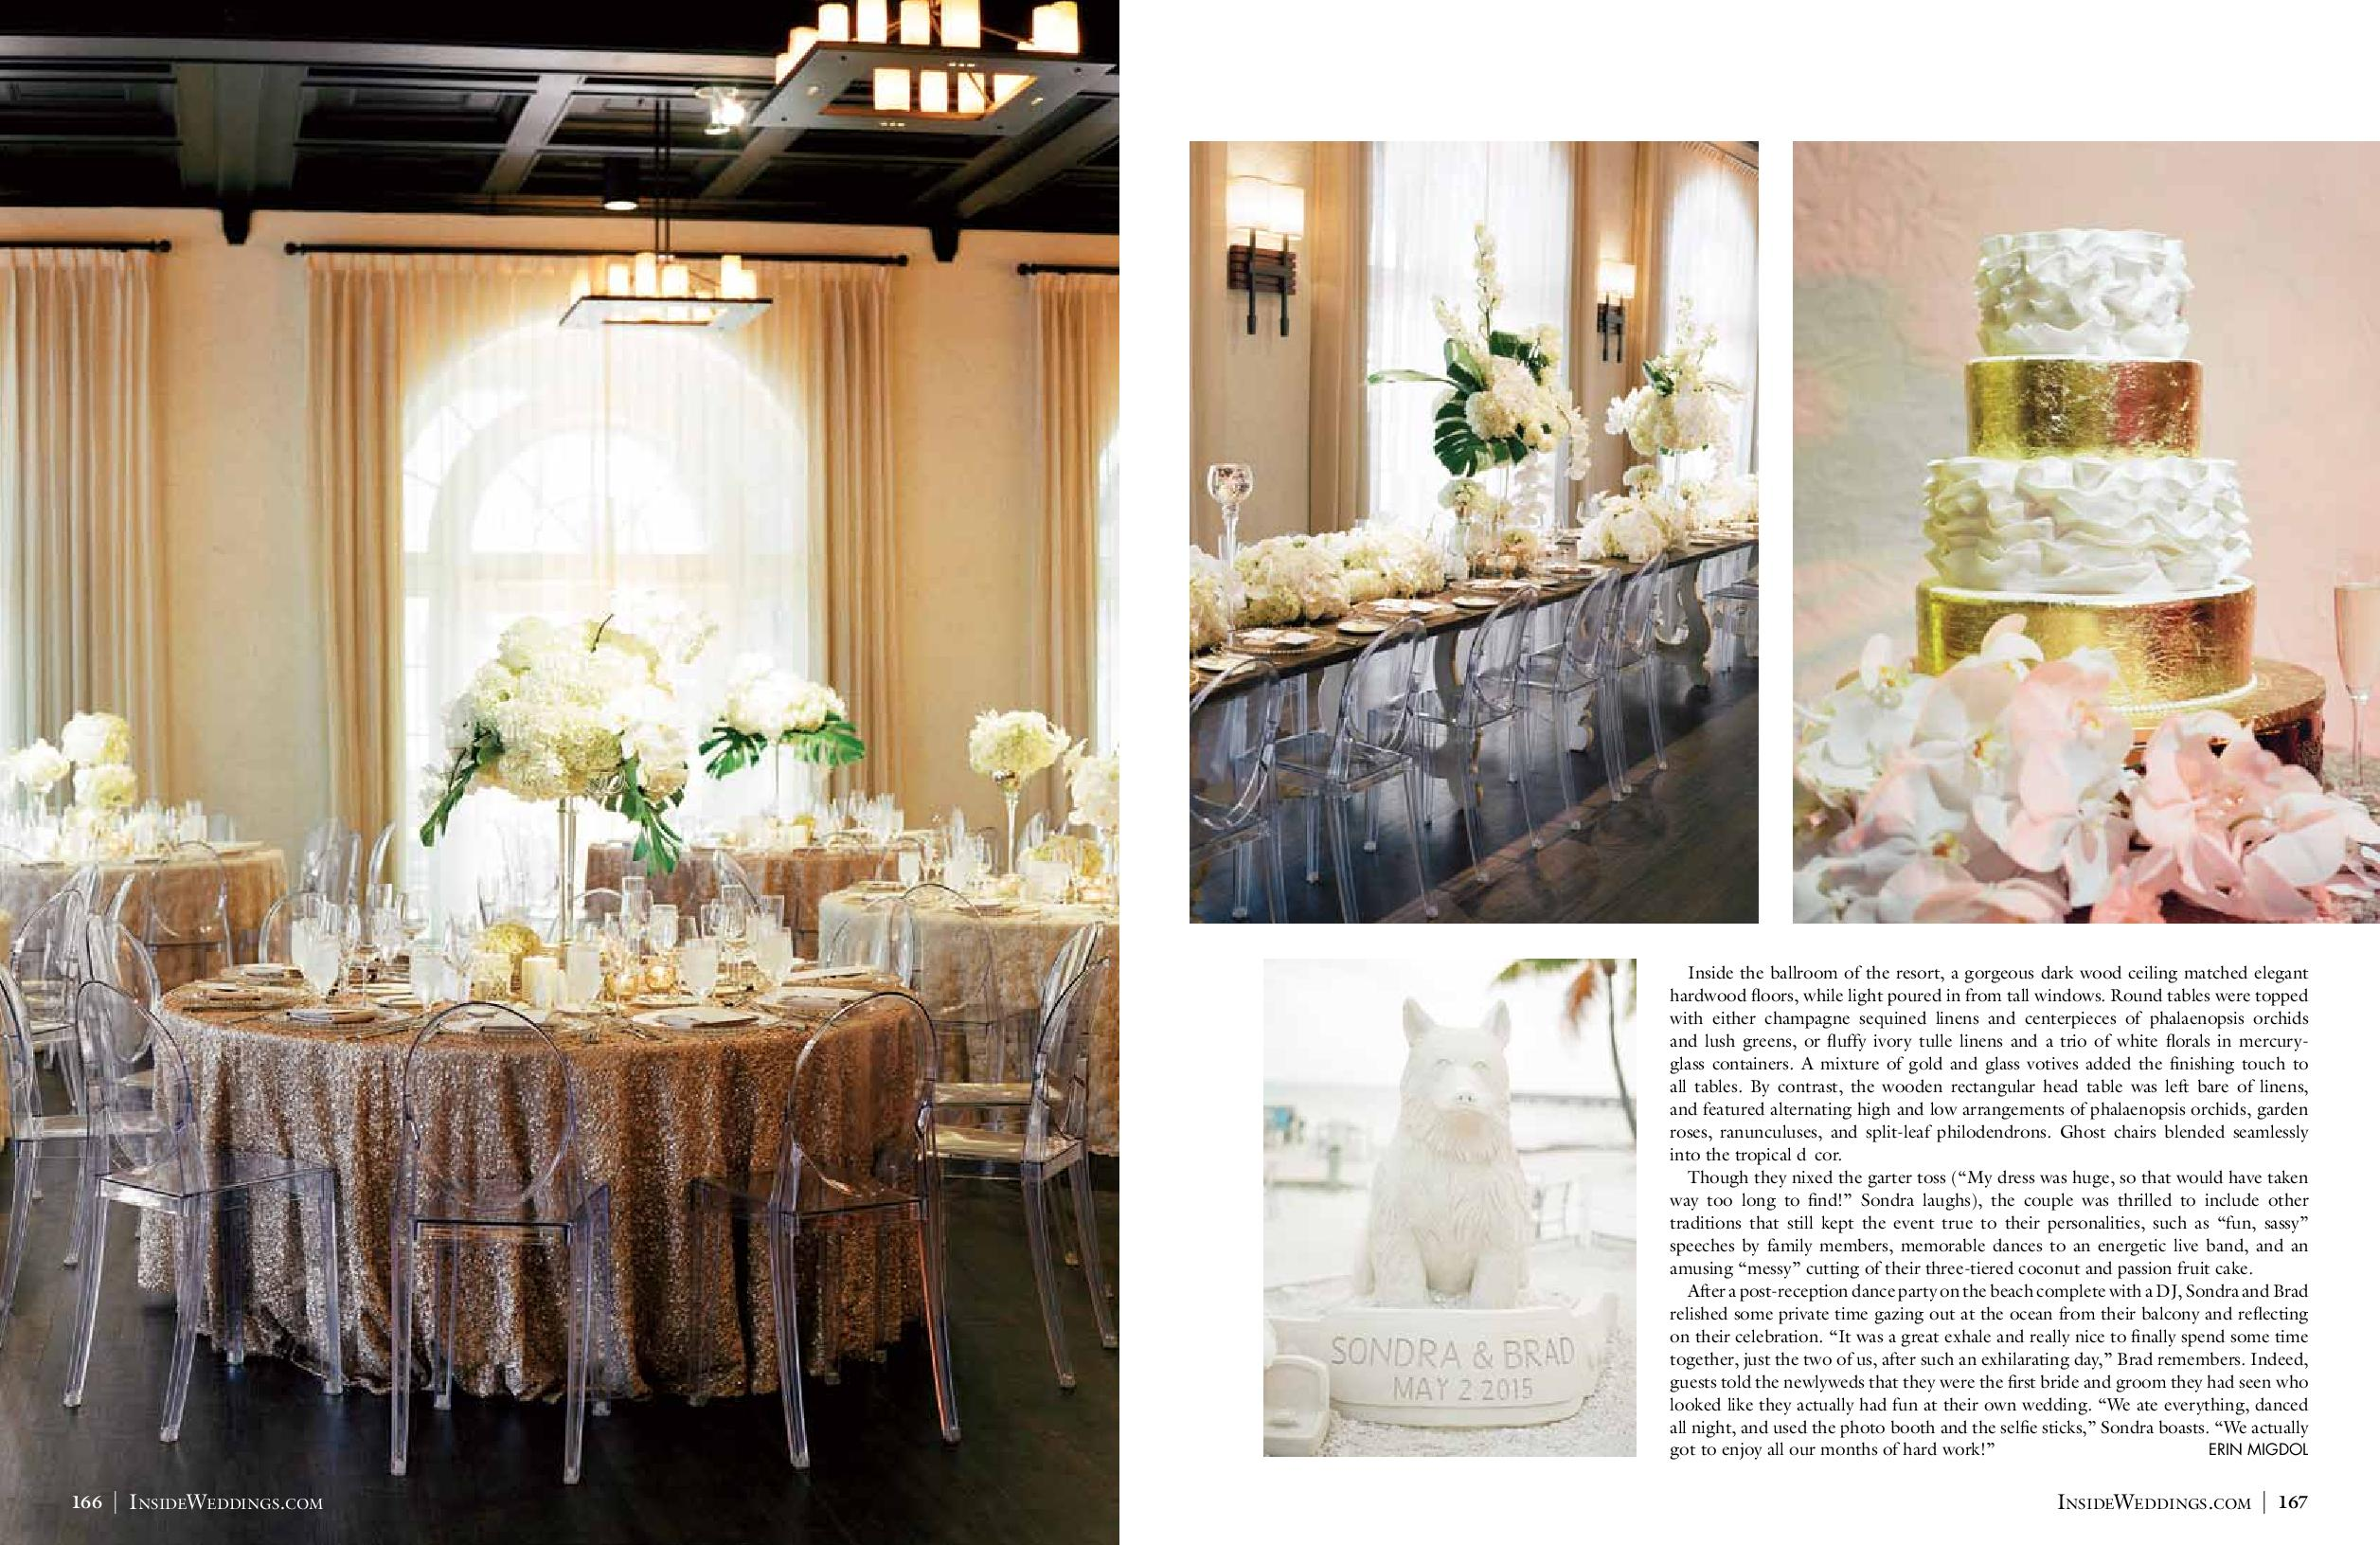 Ortagus wedding layout-page-004